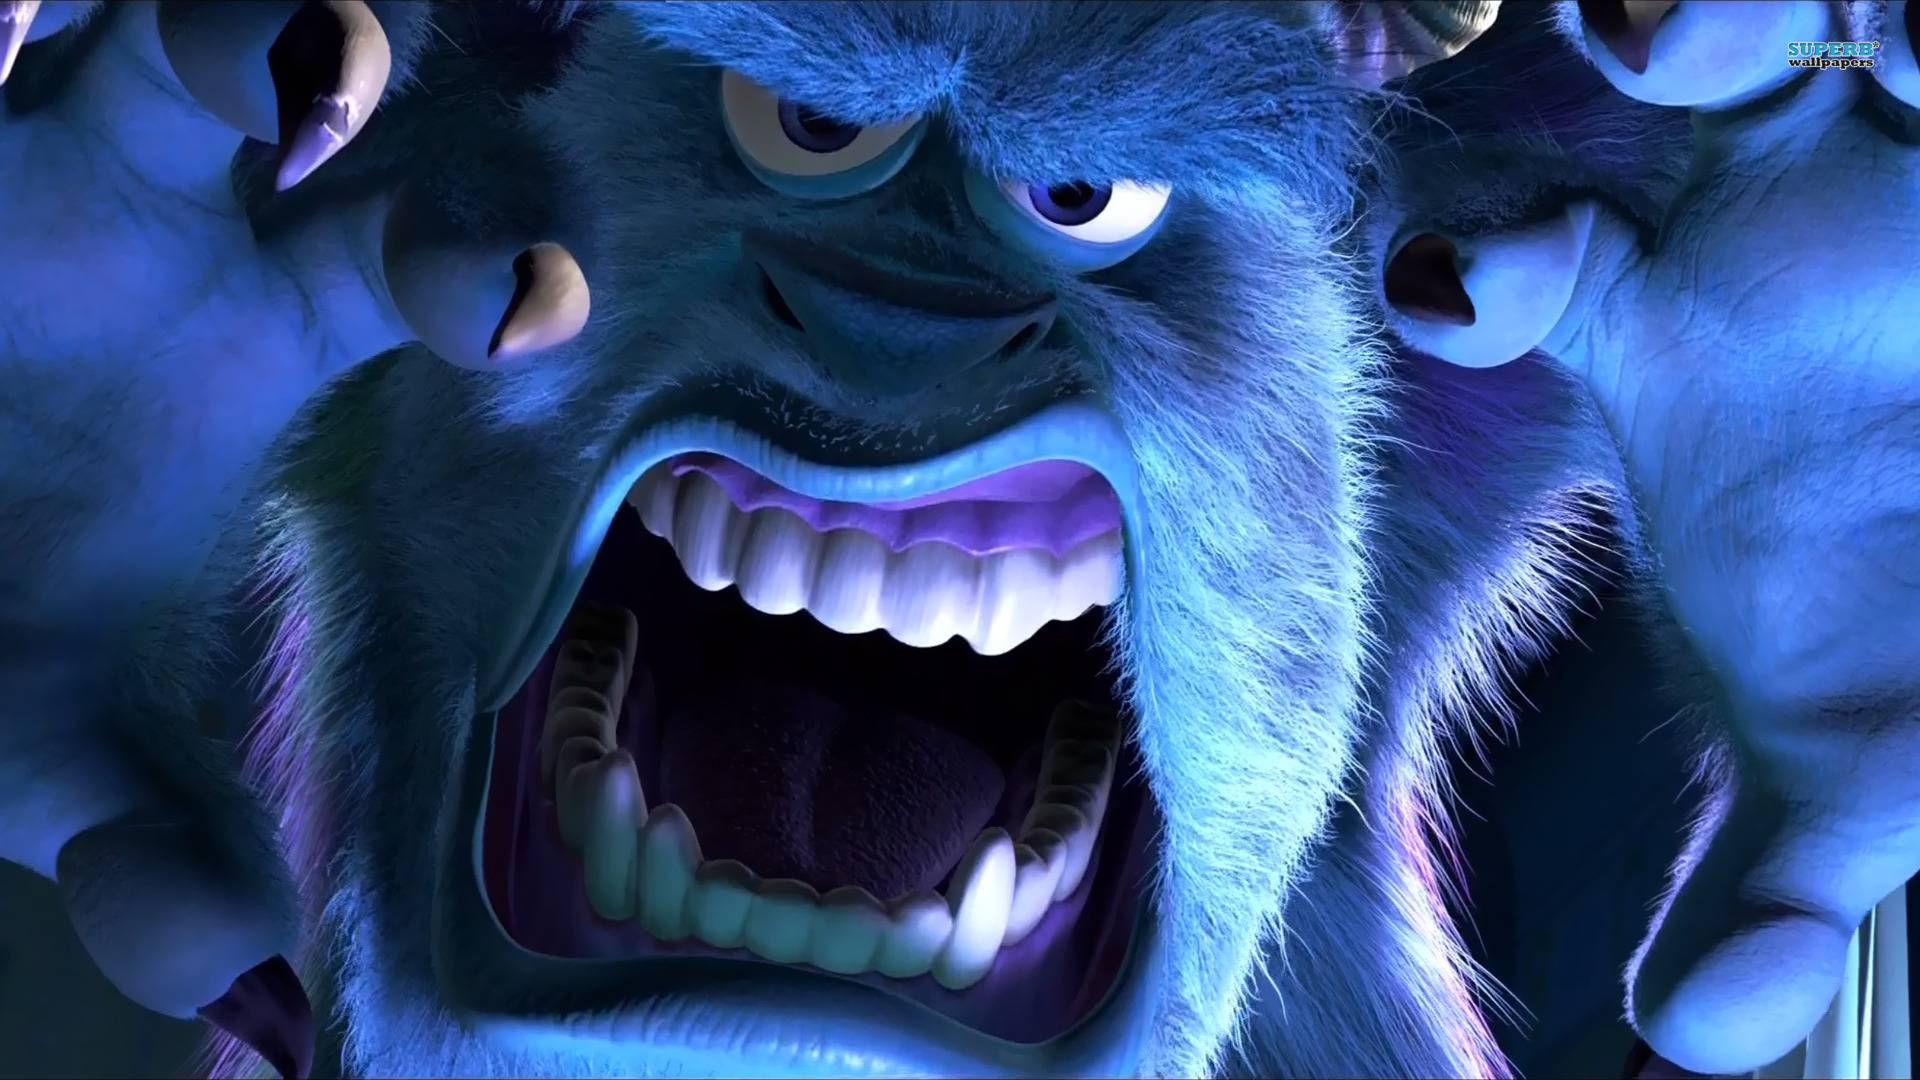 Movie Review - Monsters Inc.